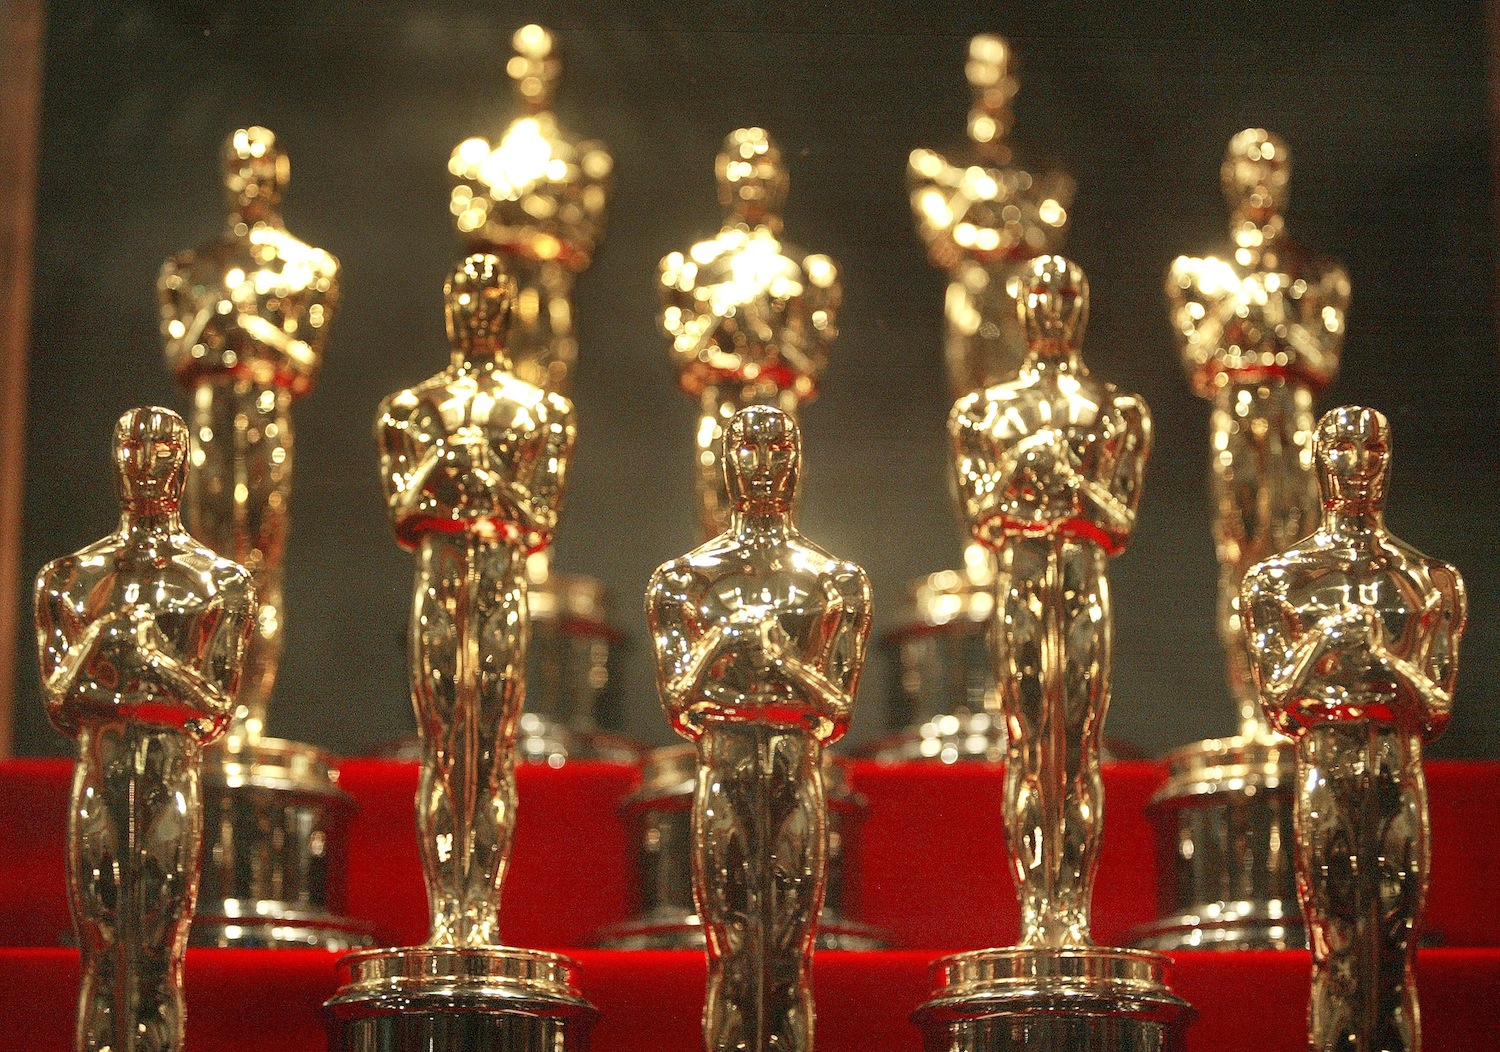 Oscar statuettes are displayed on Jan. 23, 2004, at the Museum of Science and Industry in Chicago, Illinois